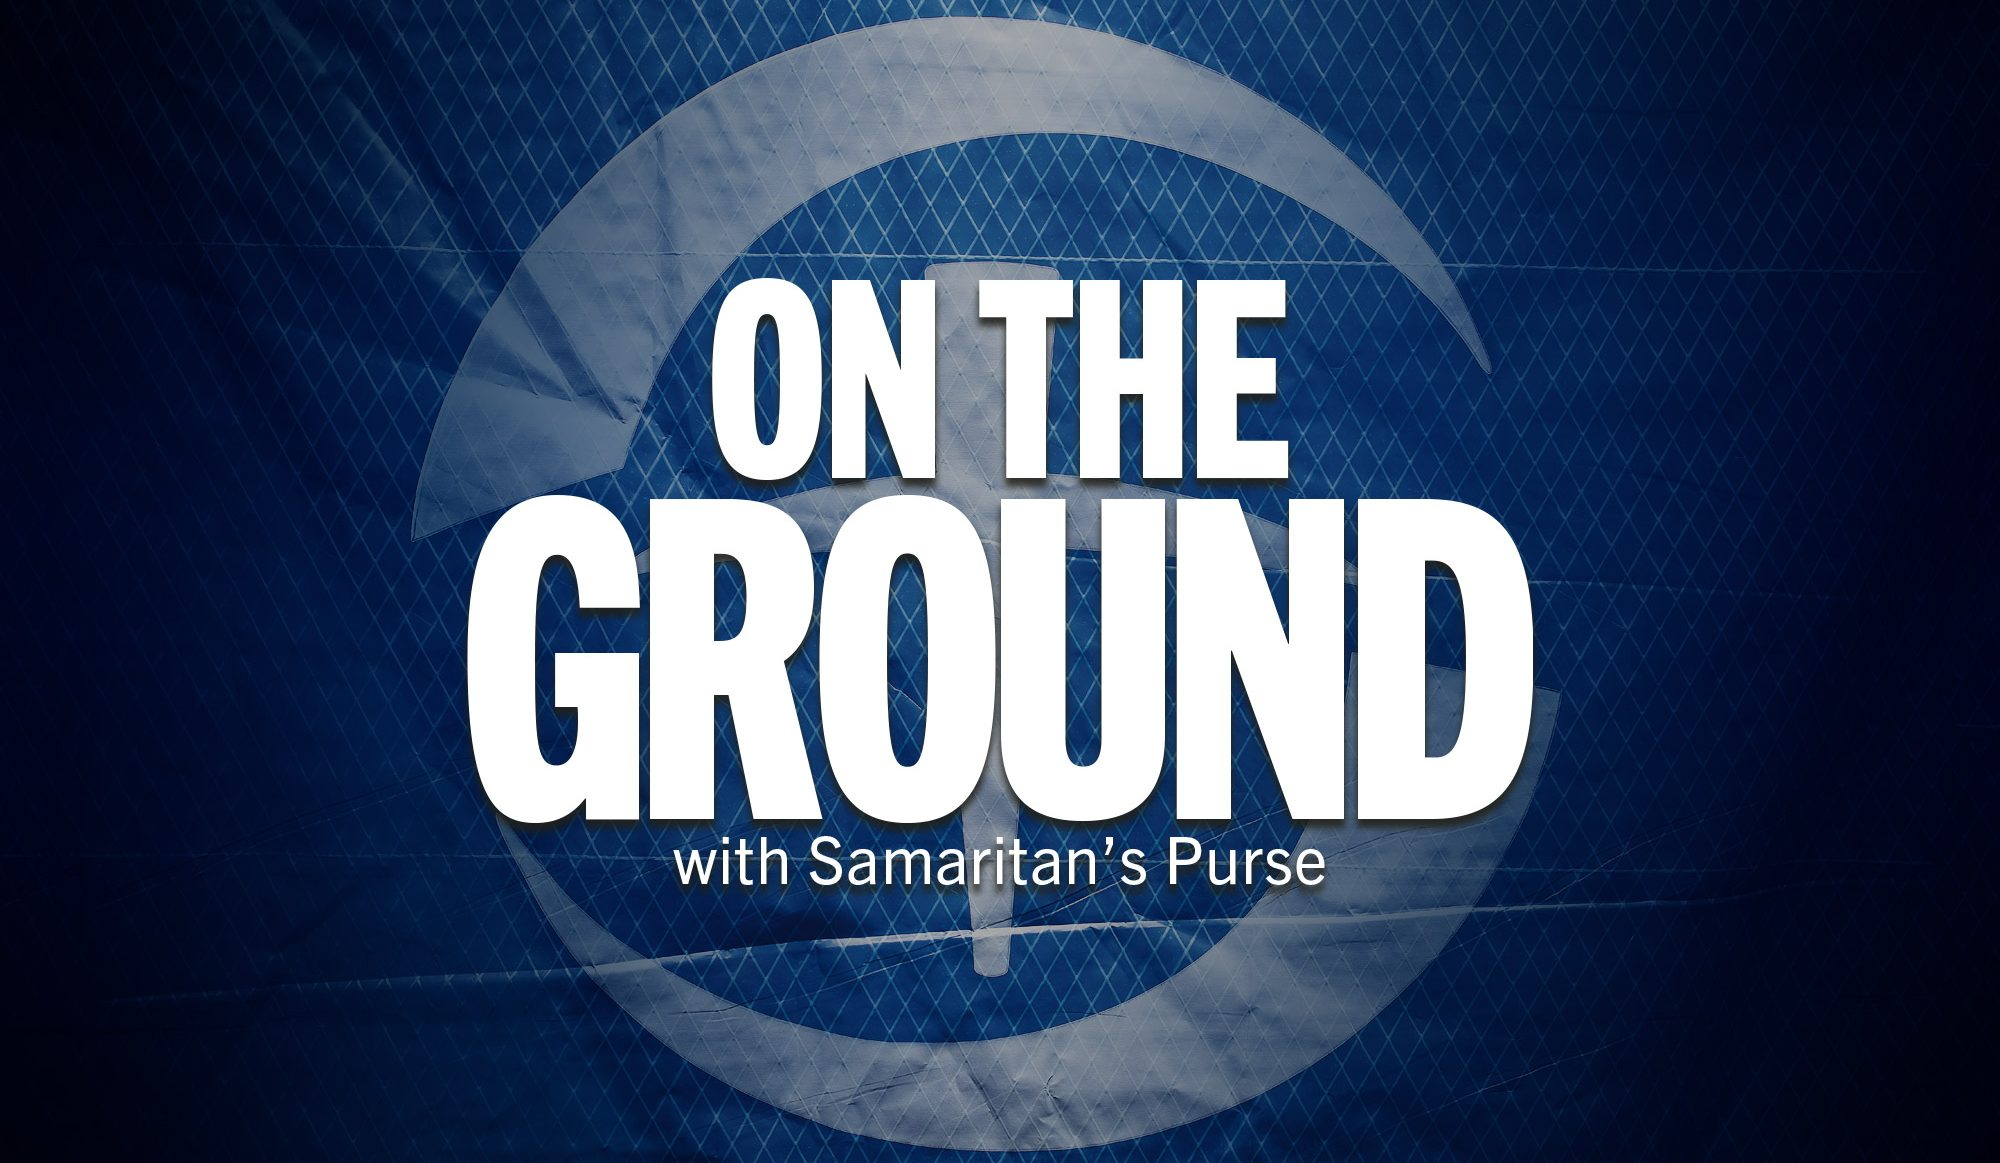 On the Ground with Samaritan's Purse